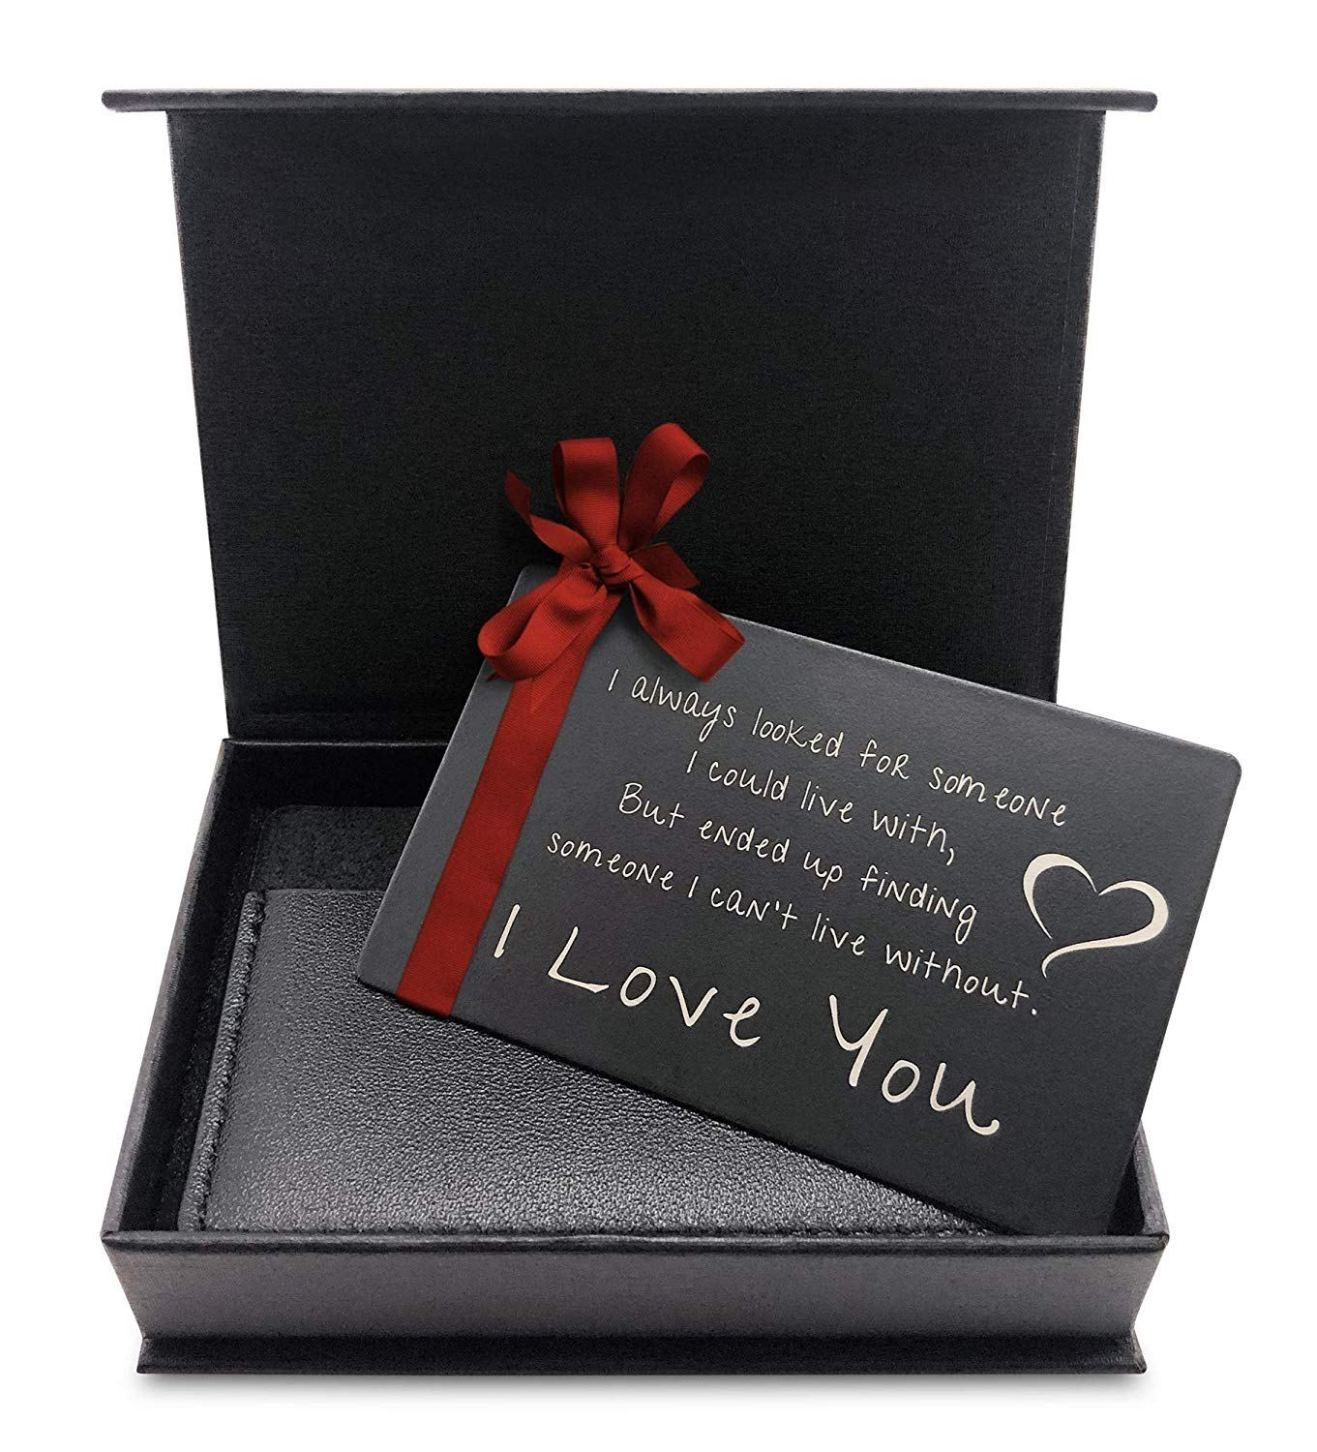 Romantic Gifts and Ideas for that Special Someone